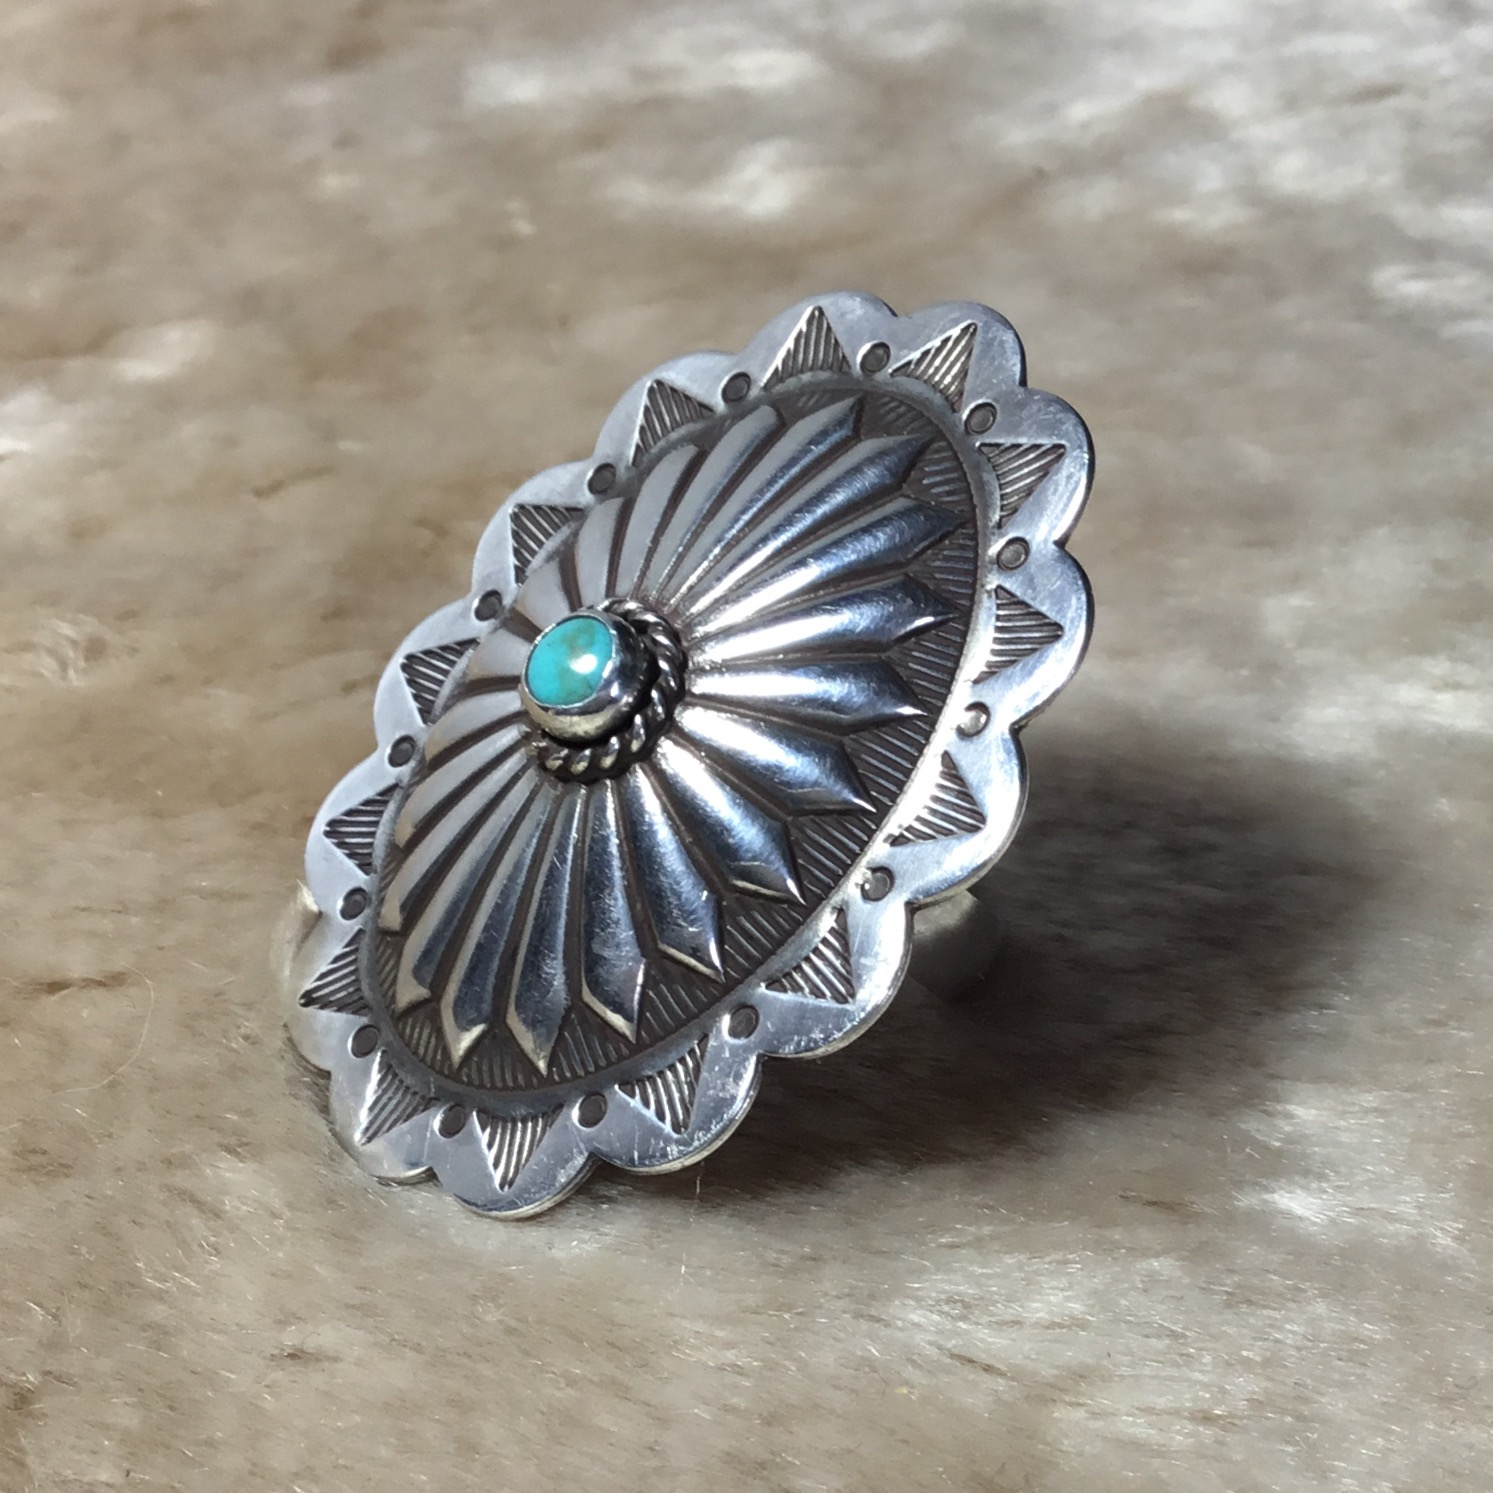 Turquoise Concho Ring From RISH JEWELRY